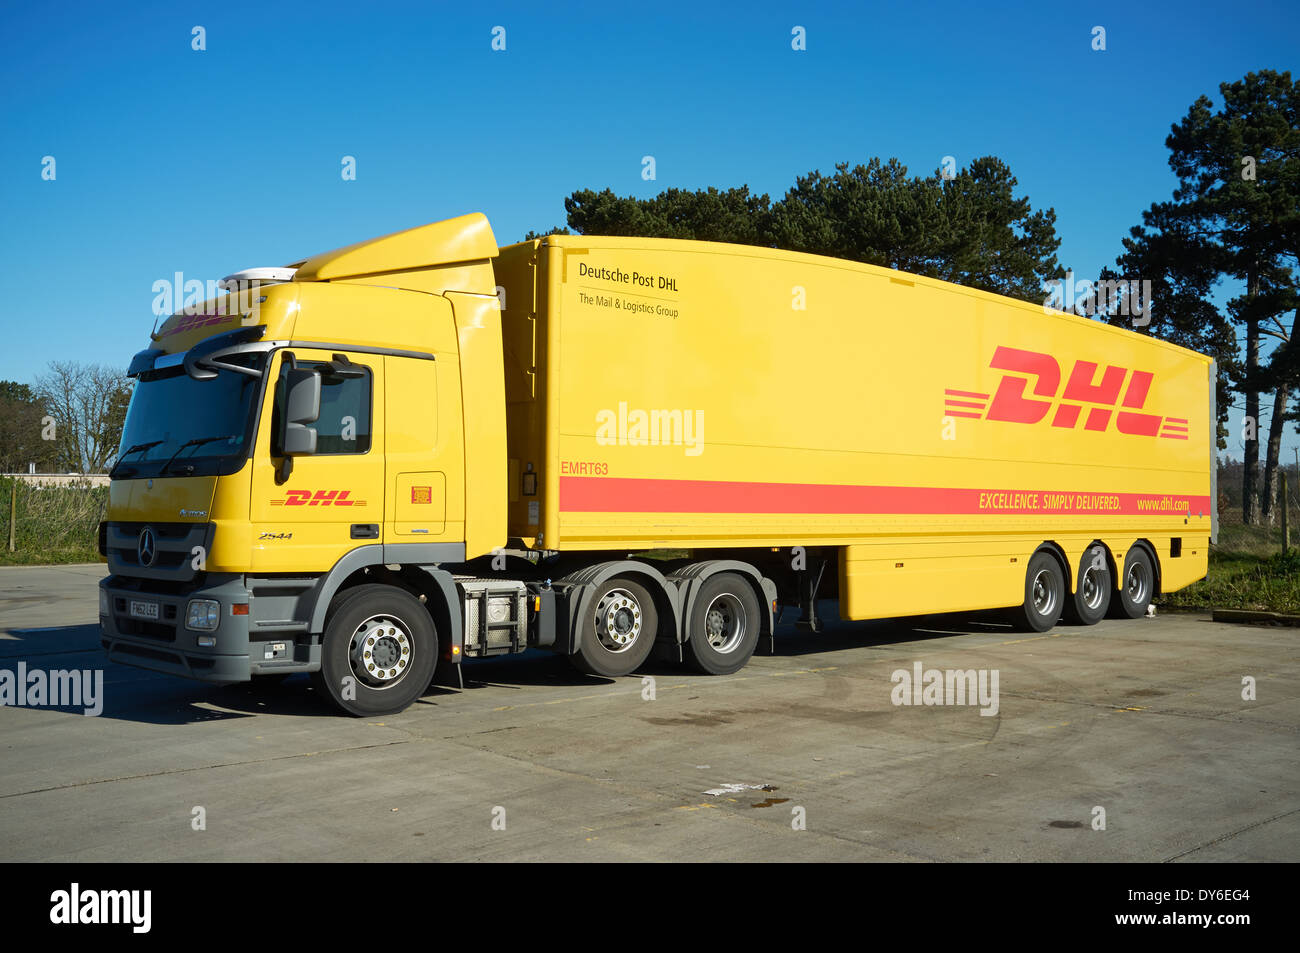 deutsche post dhl lkw stockfoto bild 68369956 alamy. Black Bedroom Furniture Sets. Home Design Ideas